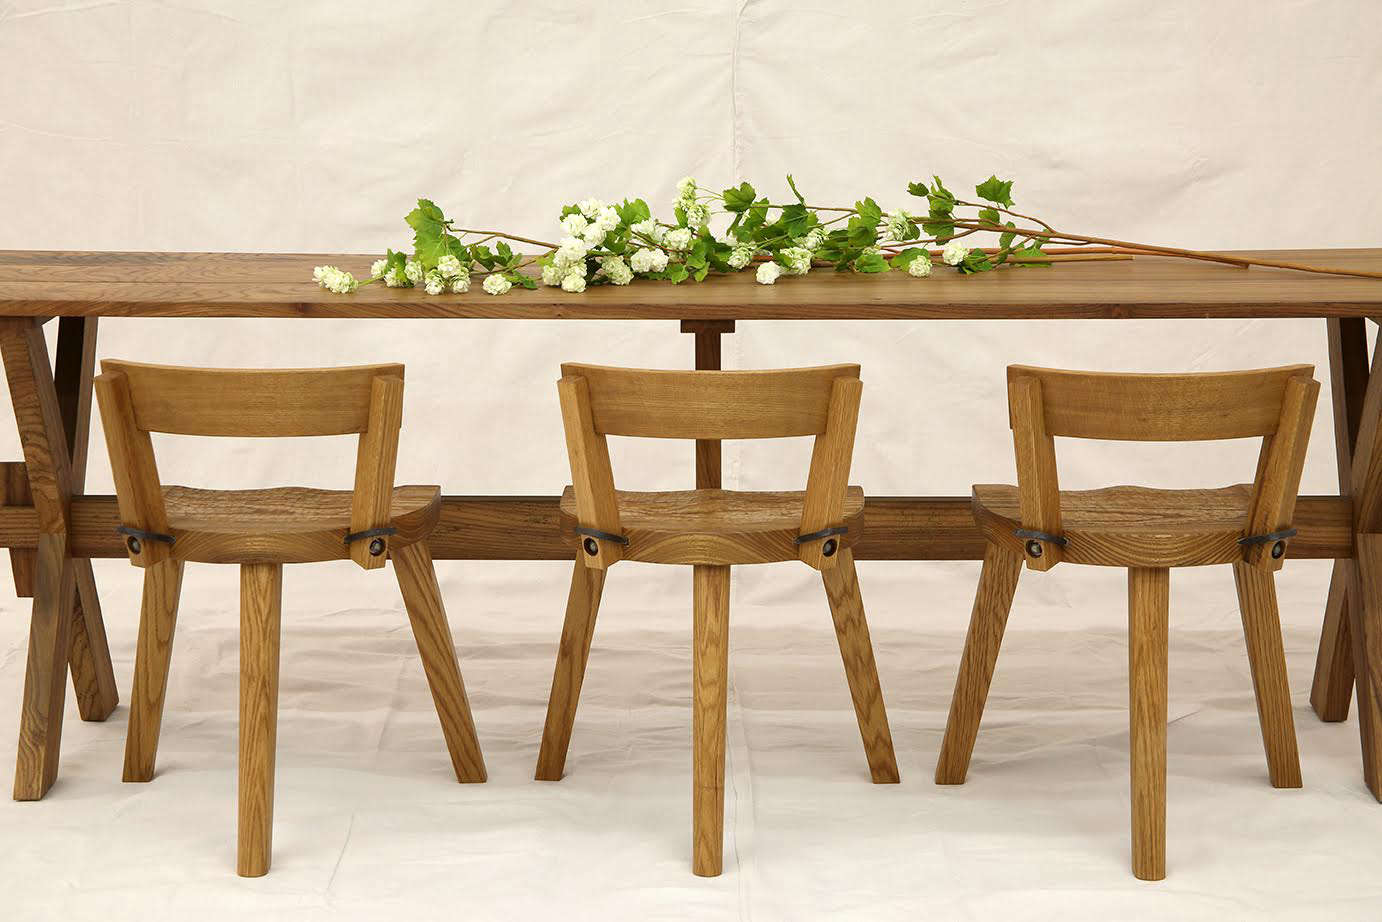 the first version of the marolles chair was a milking stool with a three legged 9